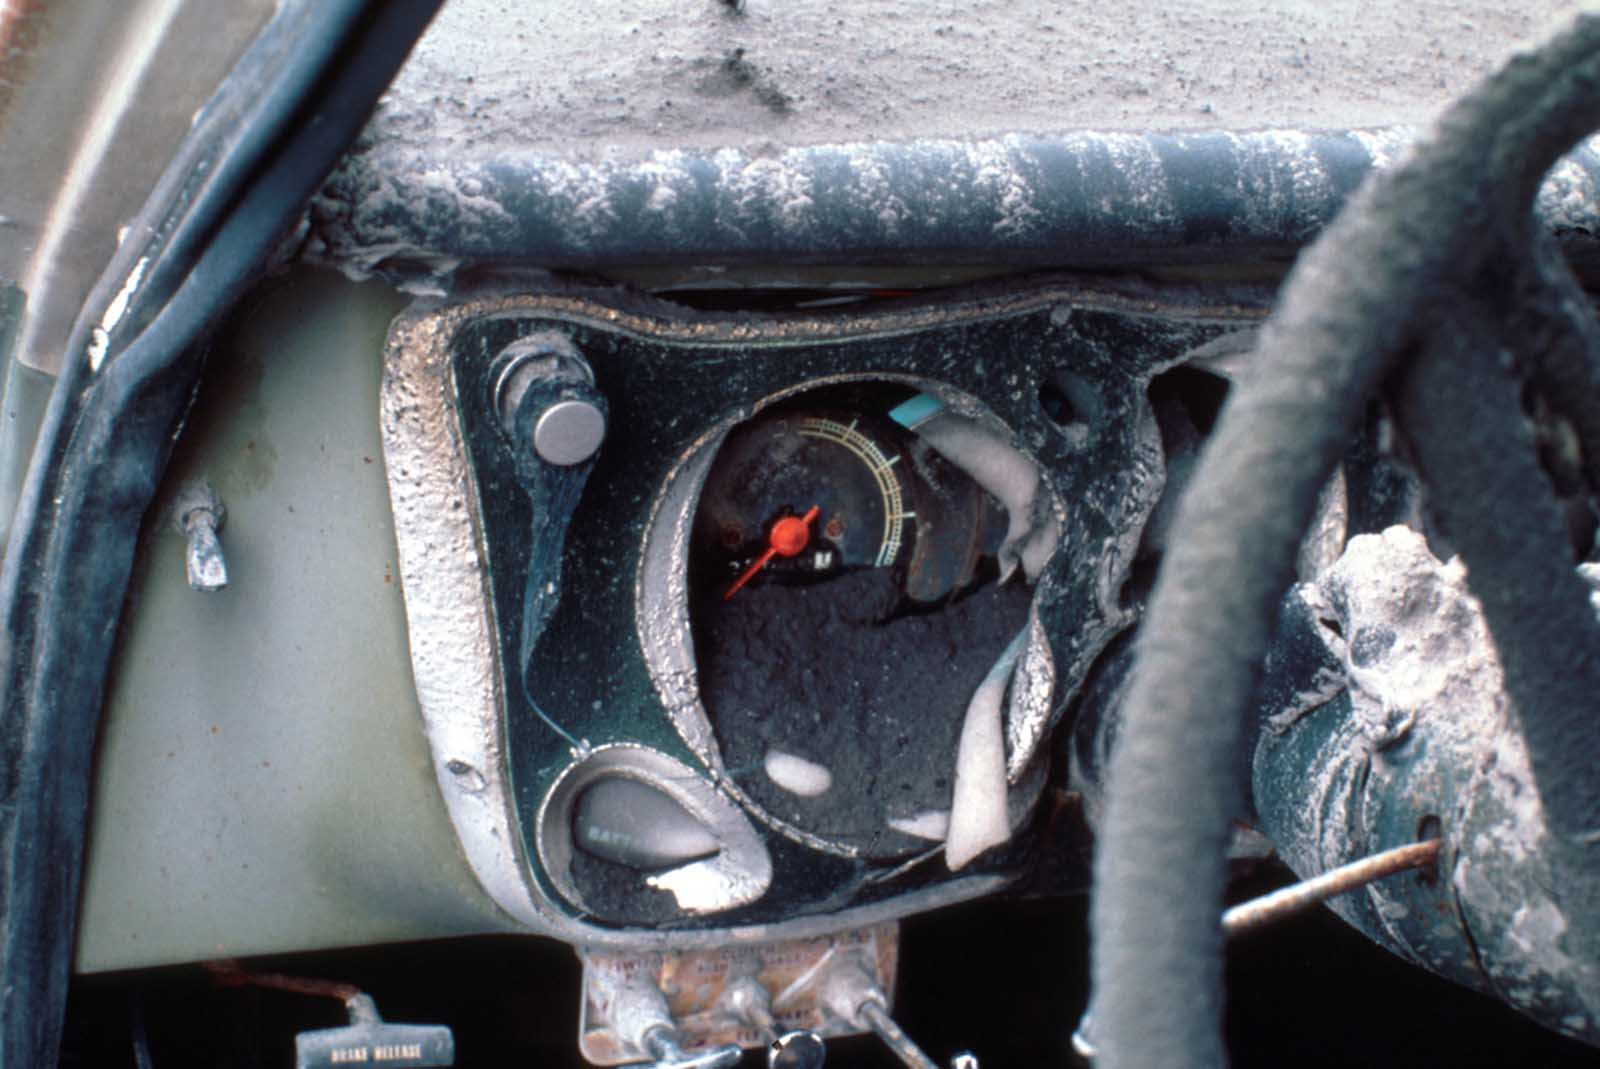 The melted dashboard of pickup truck located on ridge top about 14 km north of Mount St. Helens, in Skamania County, Washington, on June 18, 1980.